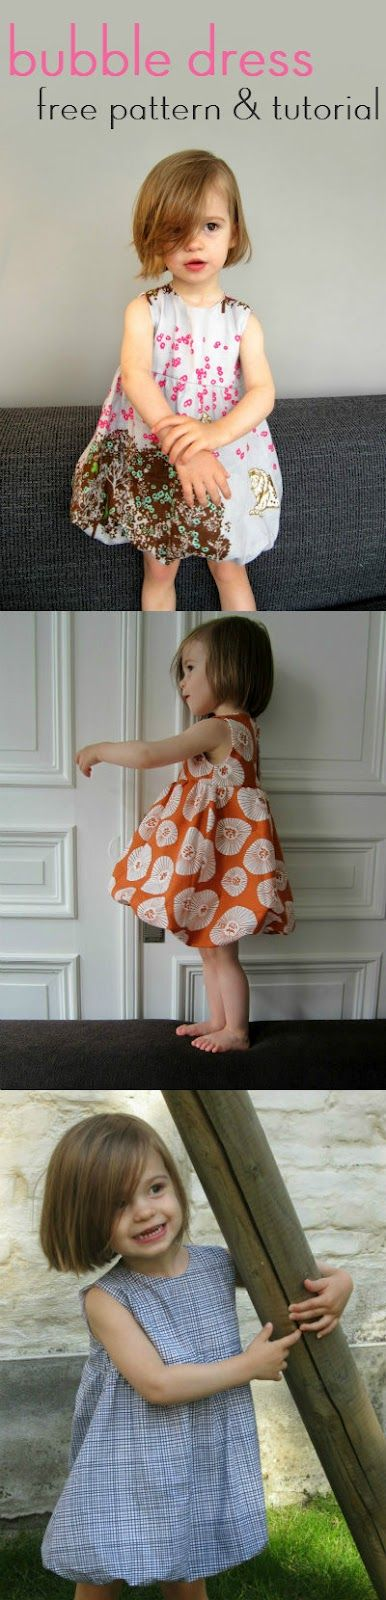 Bubble dress: patterns and tutorial